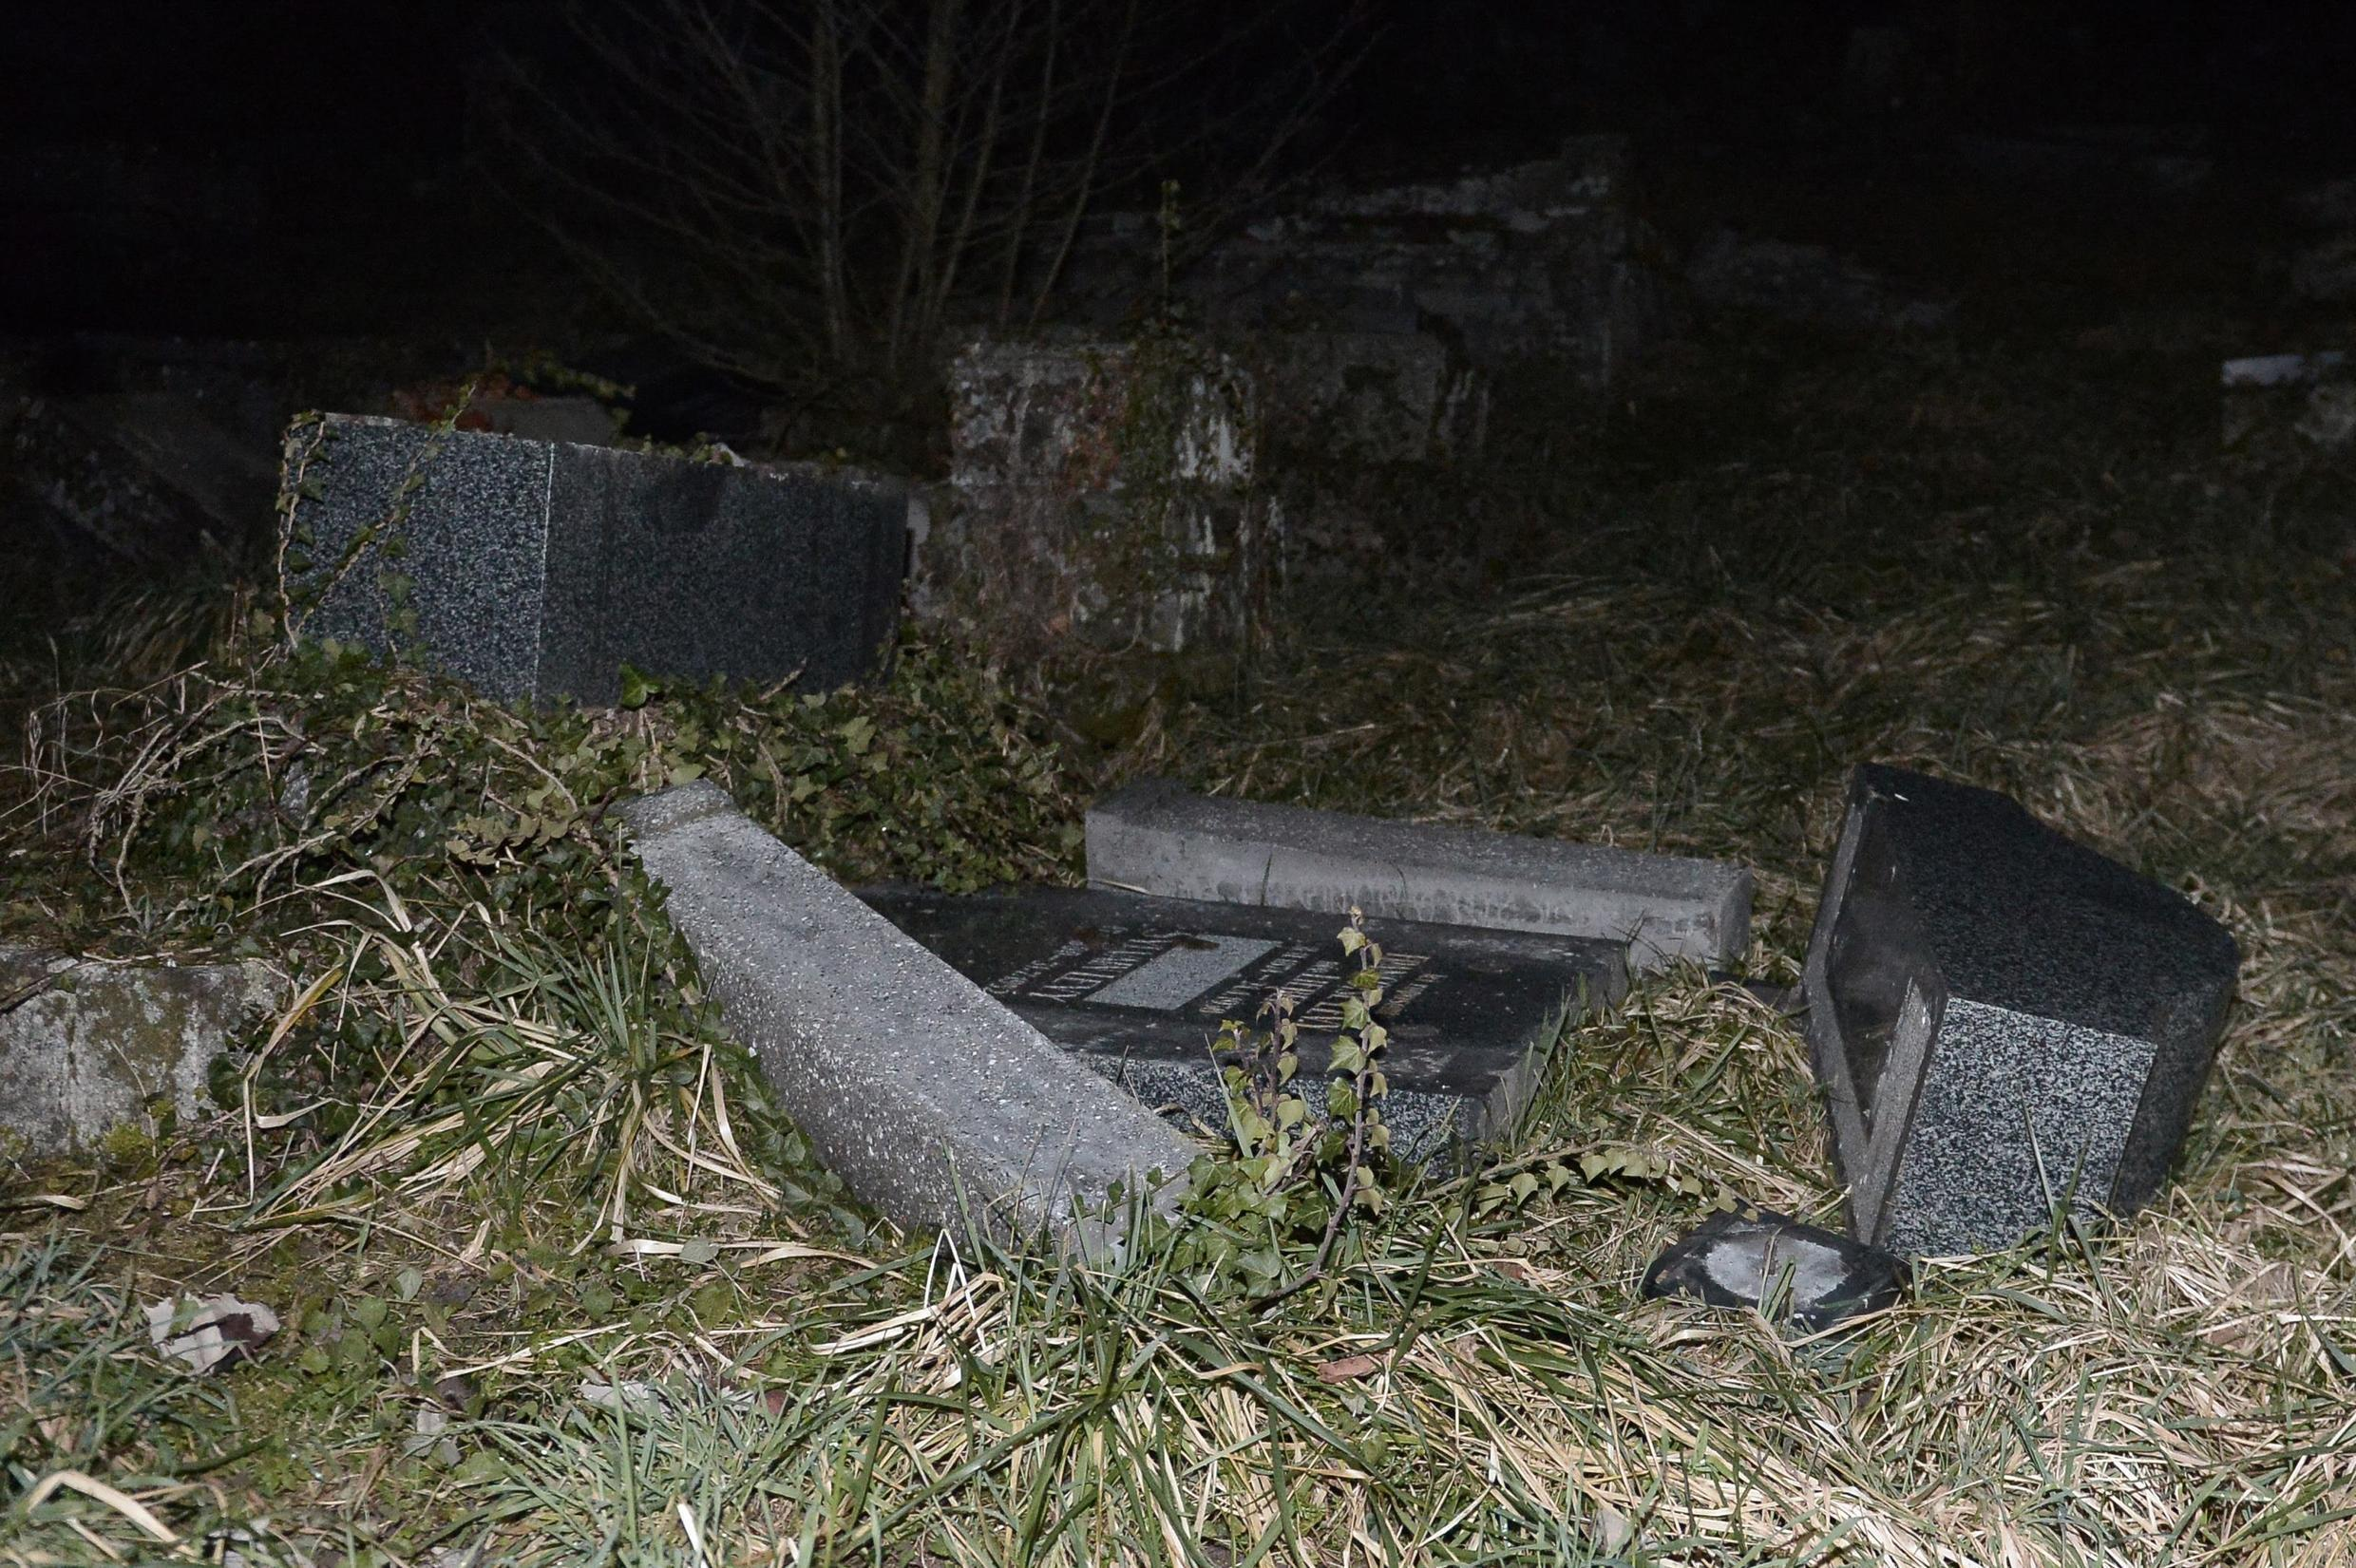 The Jewish cemetery at Sarre-Union in Alsace after the attack